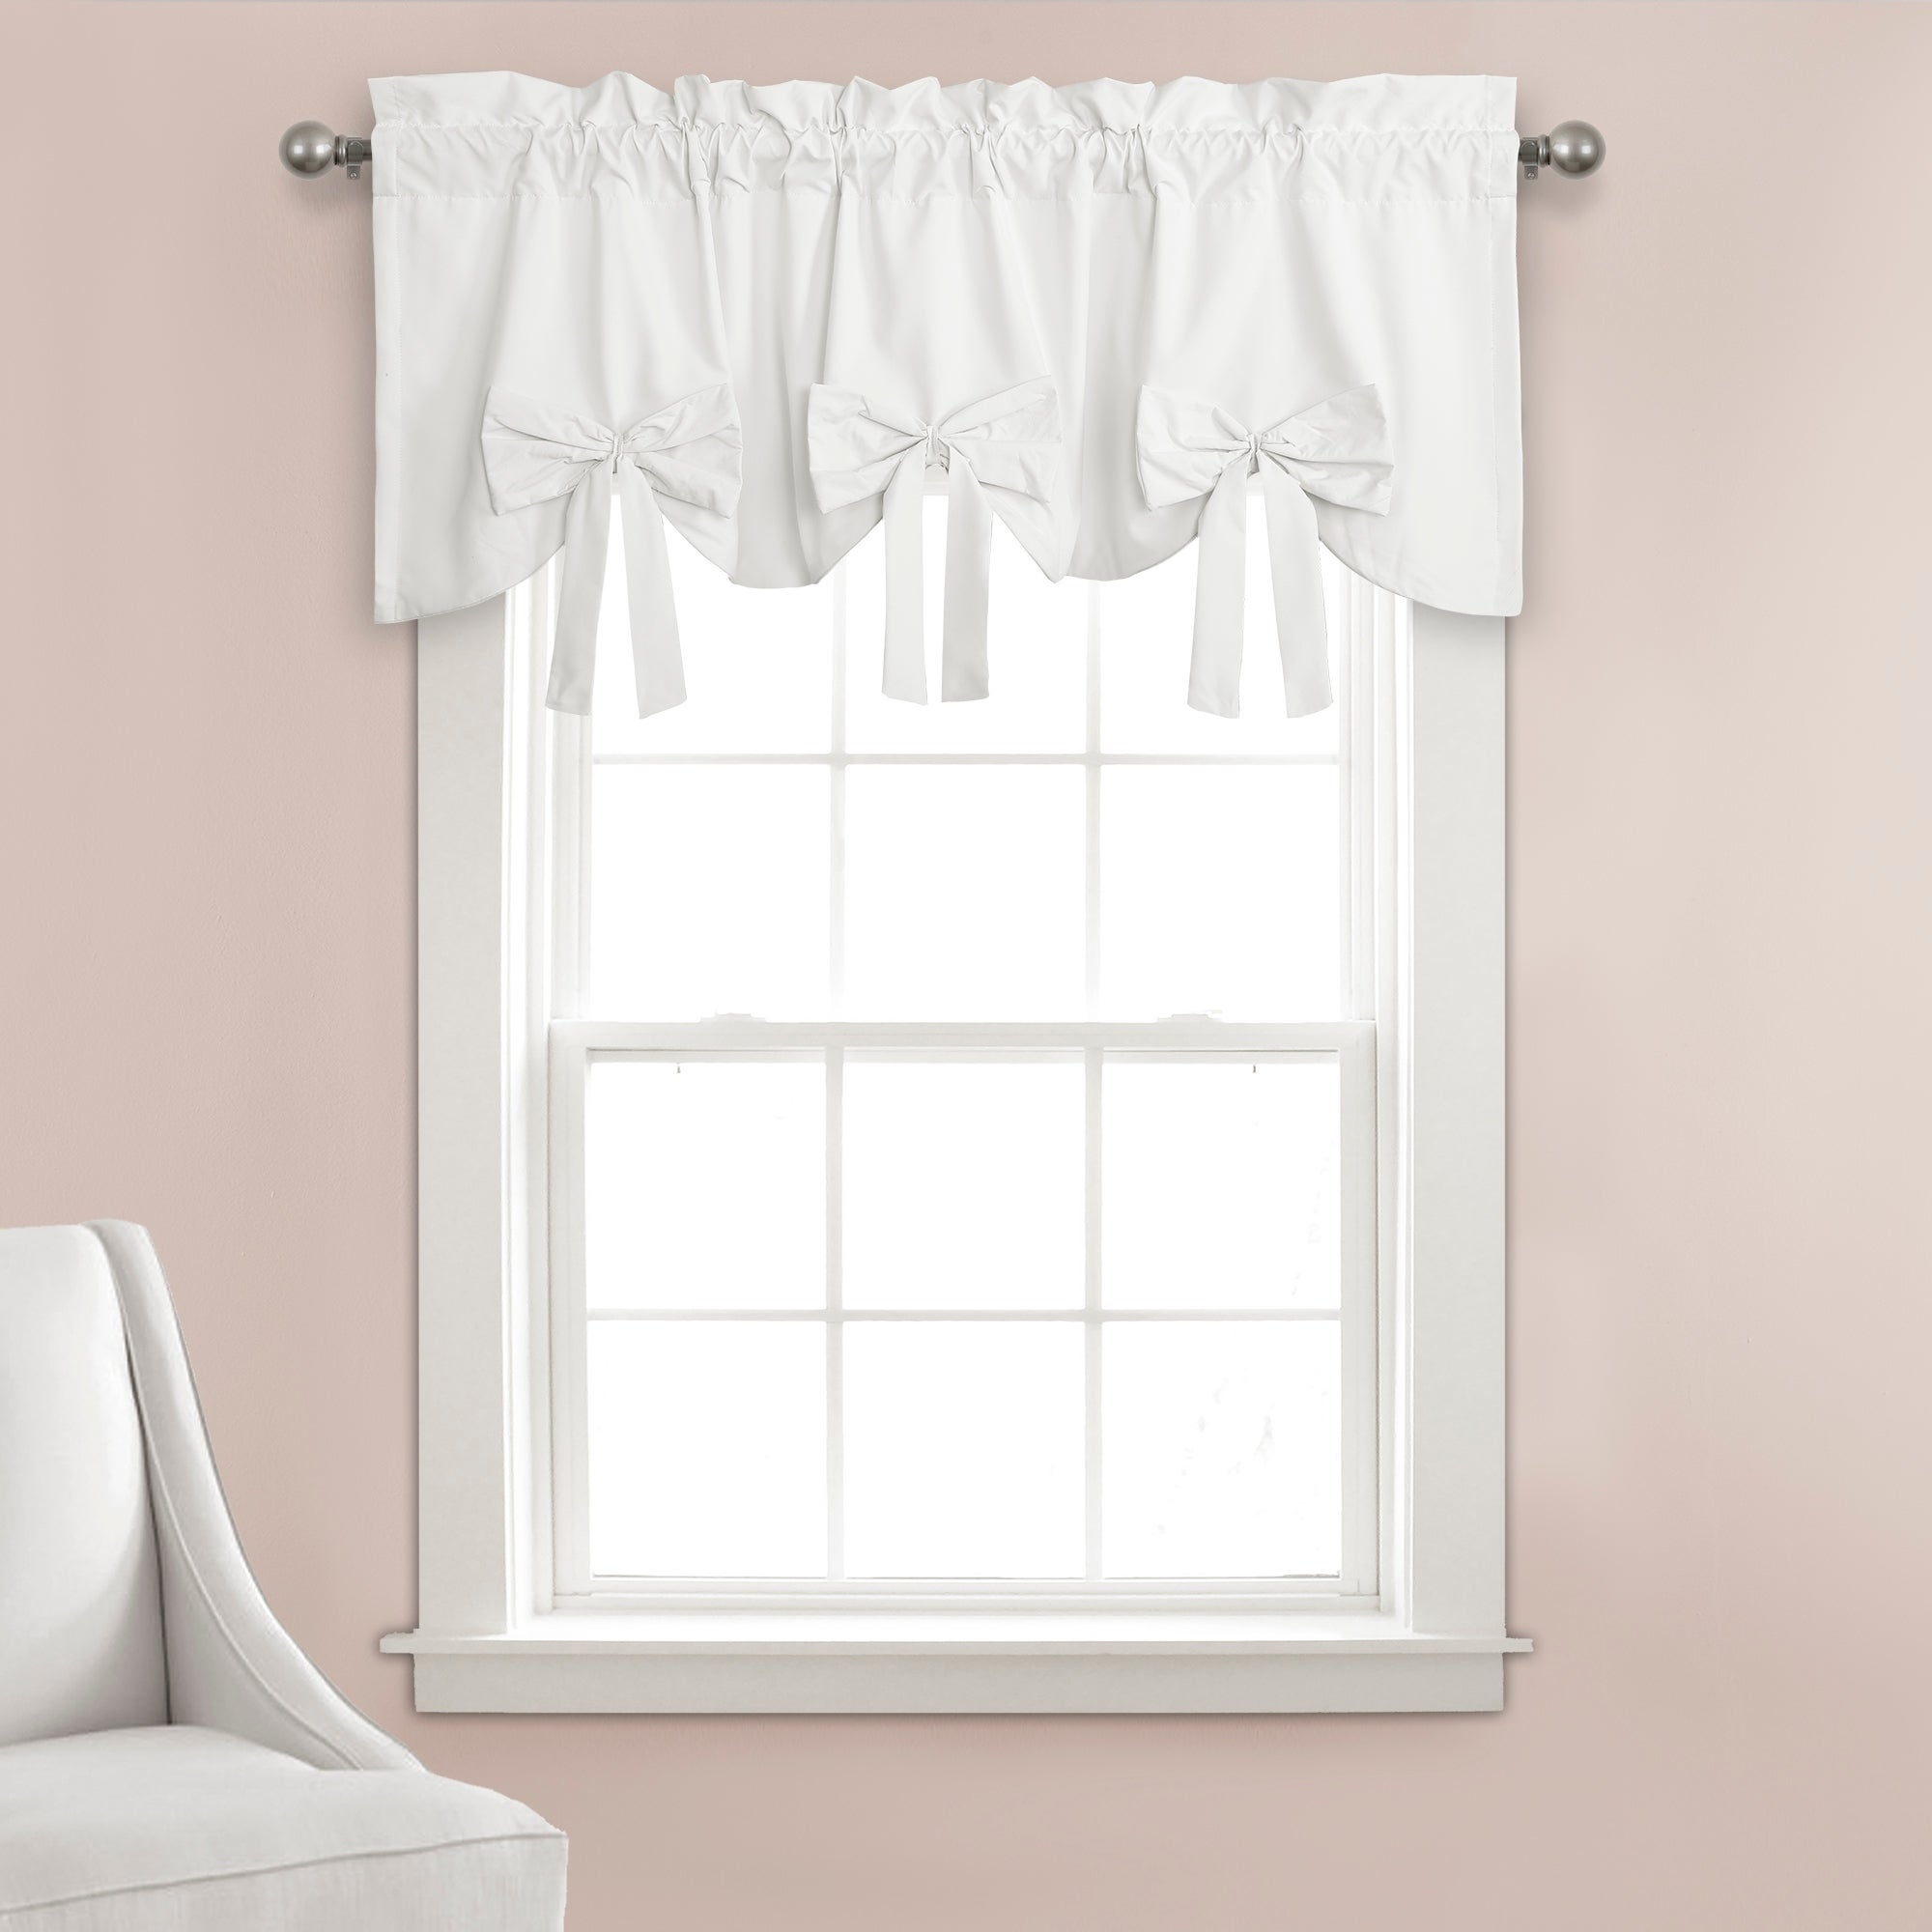 Porch Den Kino Springs Bow Window Curtain Valance 18 H X 52 W 18 H X 52 W On Sale Overstock 26482131